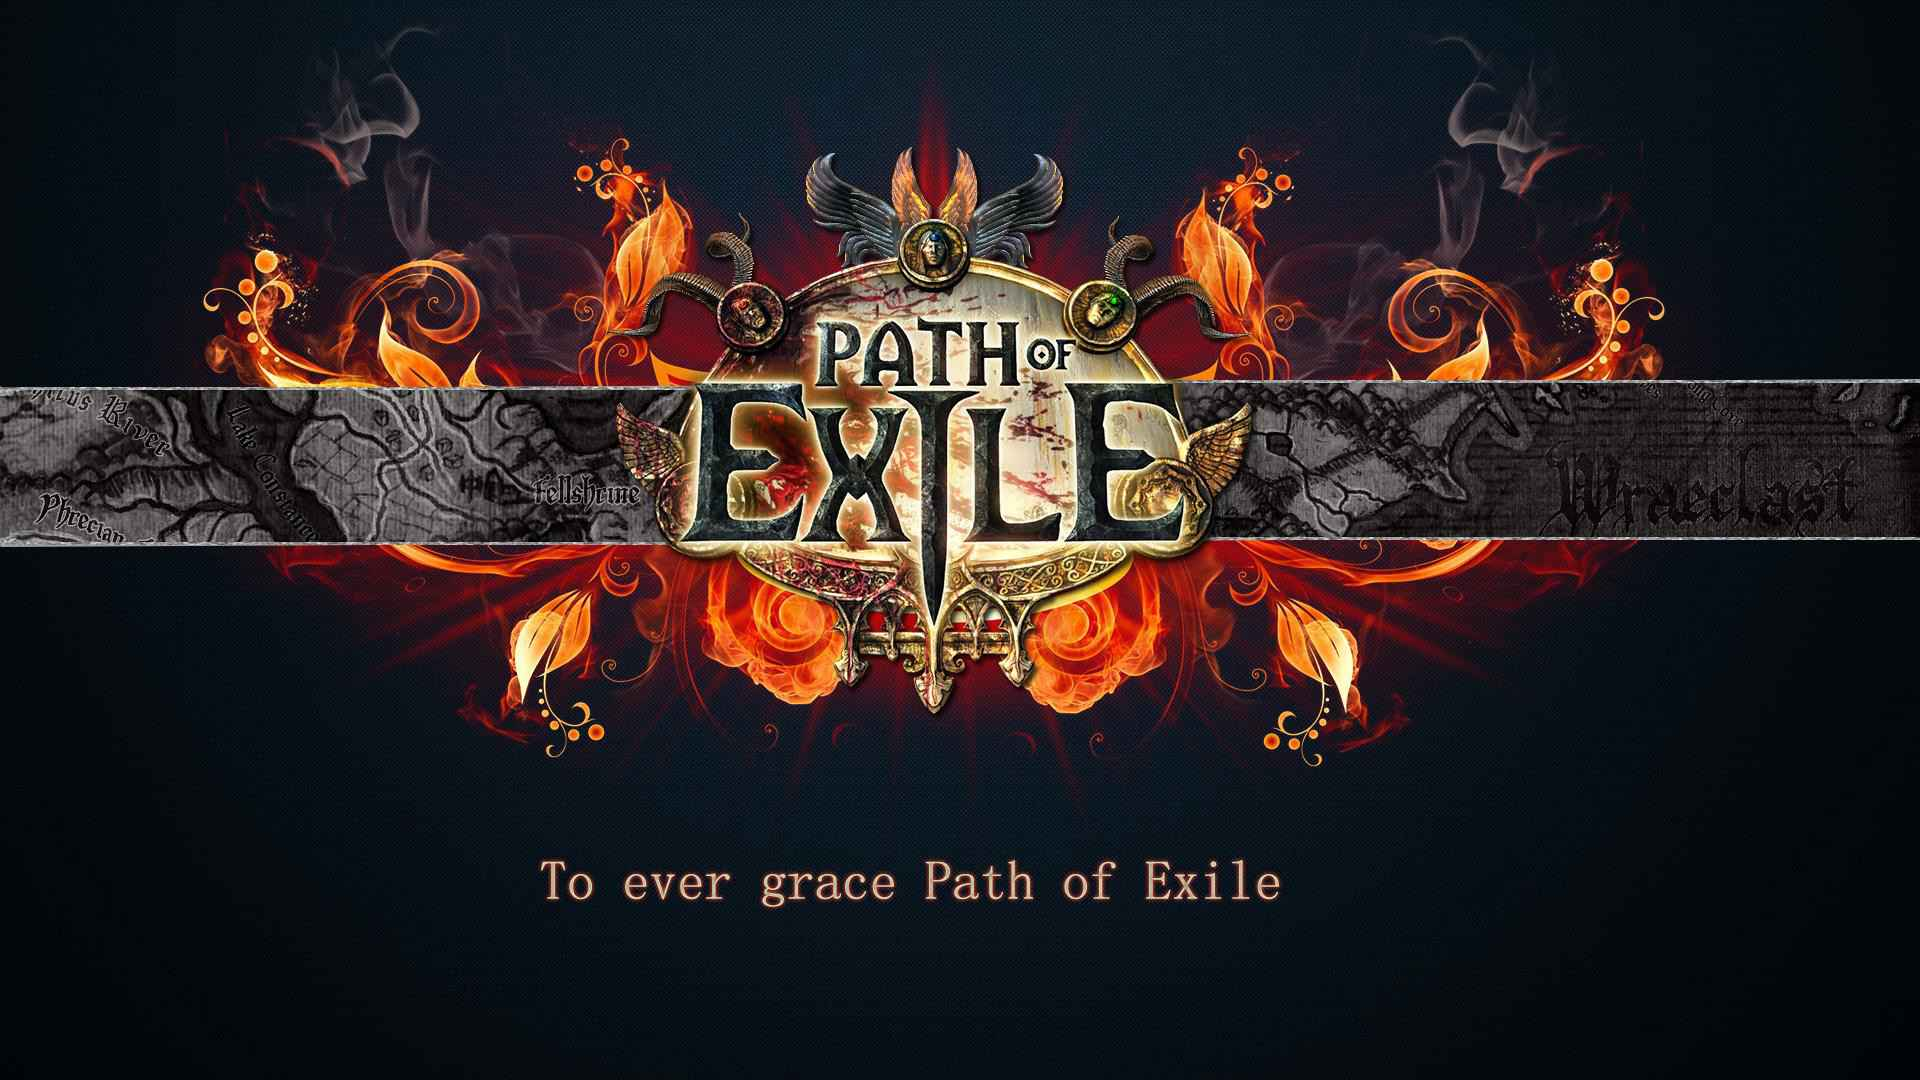 To ever grace Path of Exile